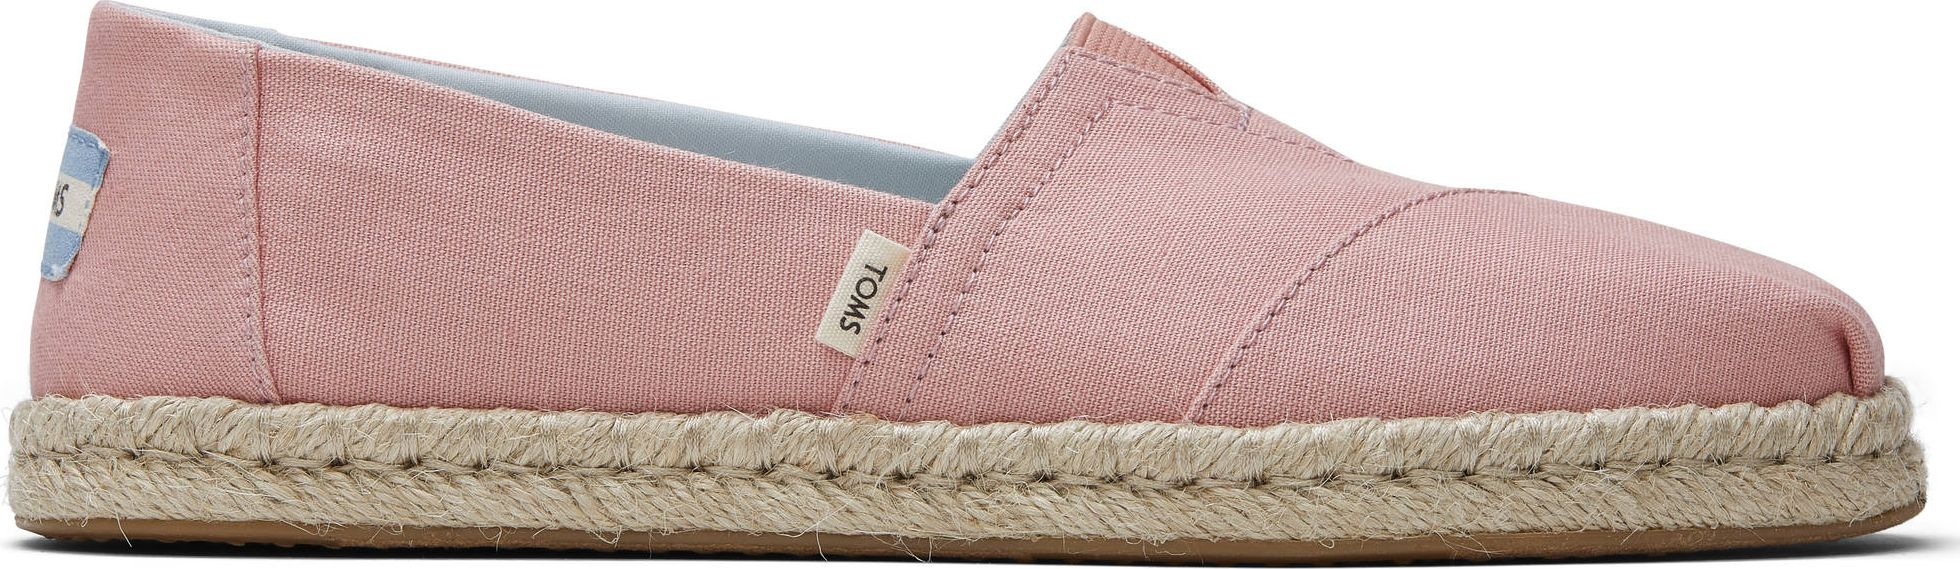 TOMS Plant Dyed Canvas Rope Women's Alpargata Pink 40